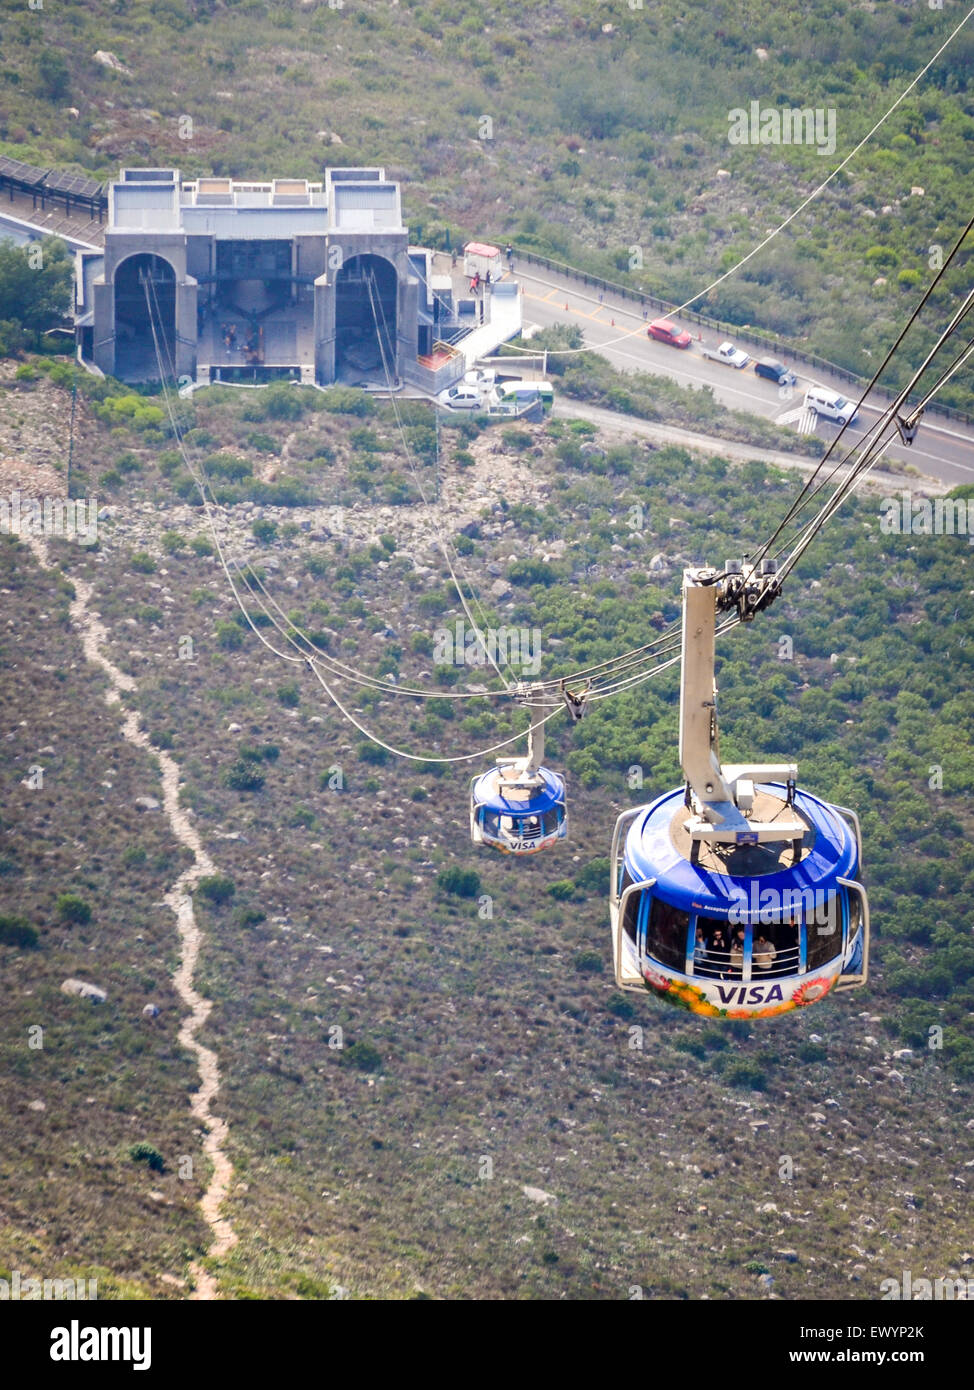 Cable car of the Table Mountain aerial cableway, Cape Town, rising in the sky above the clouds - Stock Image